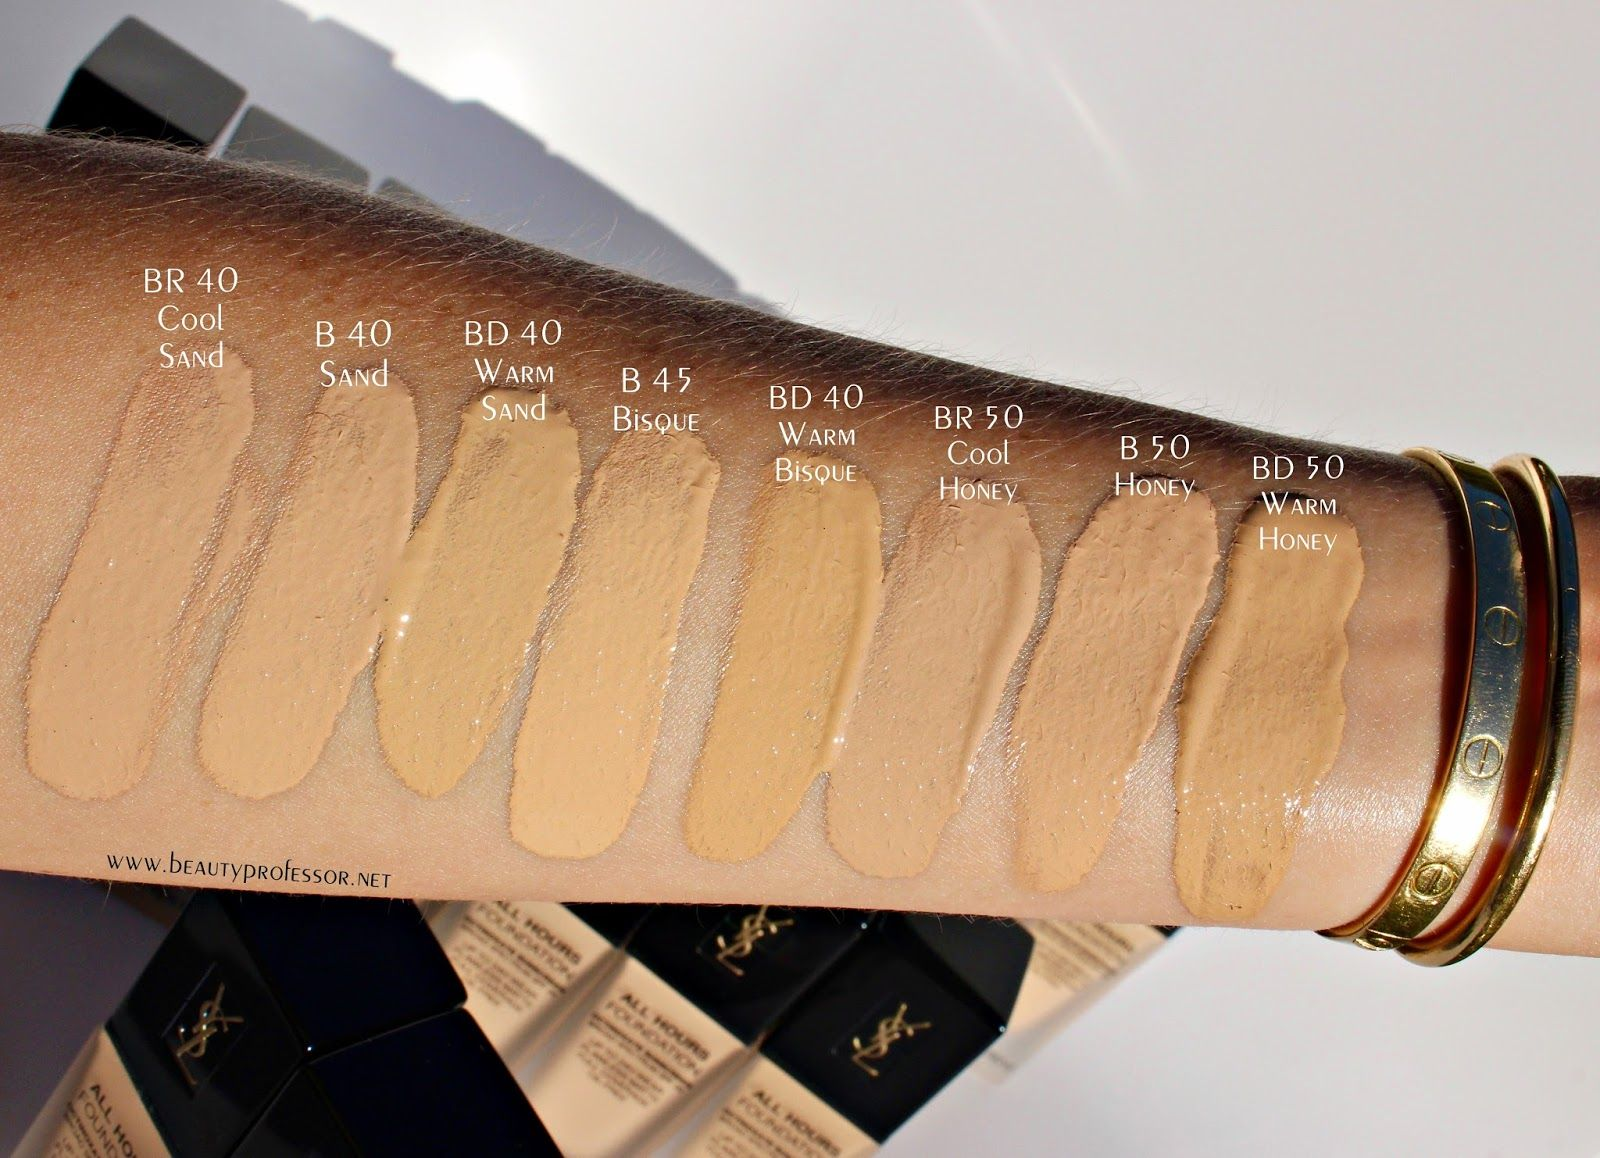 606e3219c85c8 2 Major Things: A Glimpse at the Beauty Professor x LMdB Lip Color Process  + A First Look at the YSL All Hours Foundation | Beauty | Ysl foundation,  ...